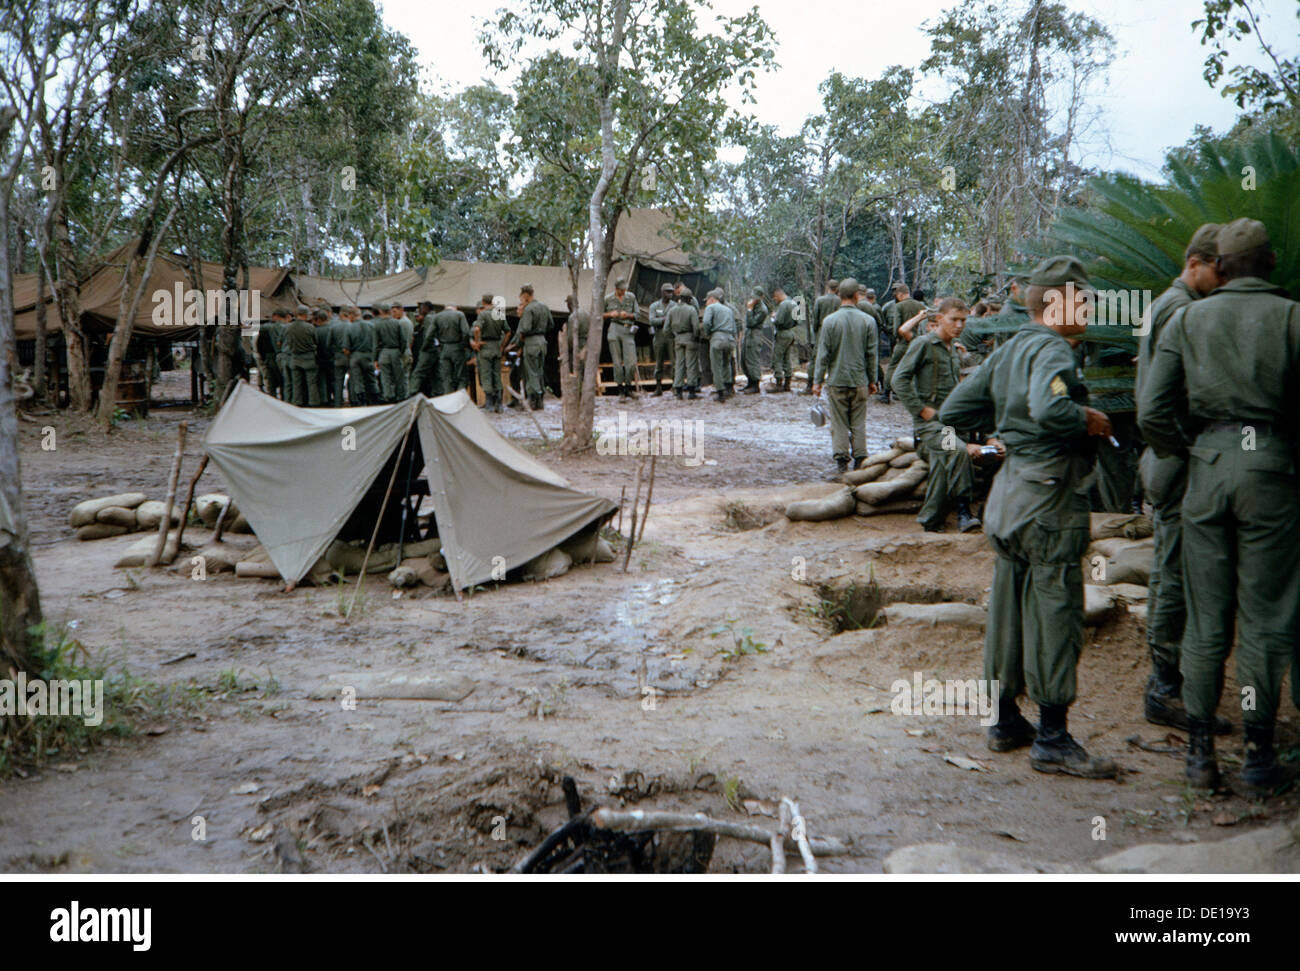 Vietnam War 1957 - 1975 American bivouac South Vietnam 1965 c& c&s tent tents soldiers soldier military Armed Forces USA & Vietnam War 1957 - 1975 American bivouac South Vietnam 1965 camp ...